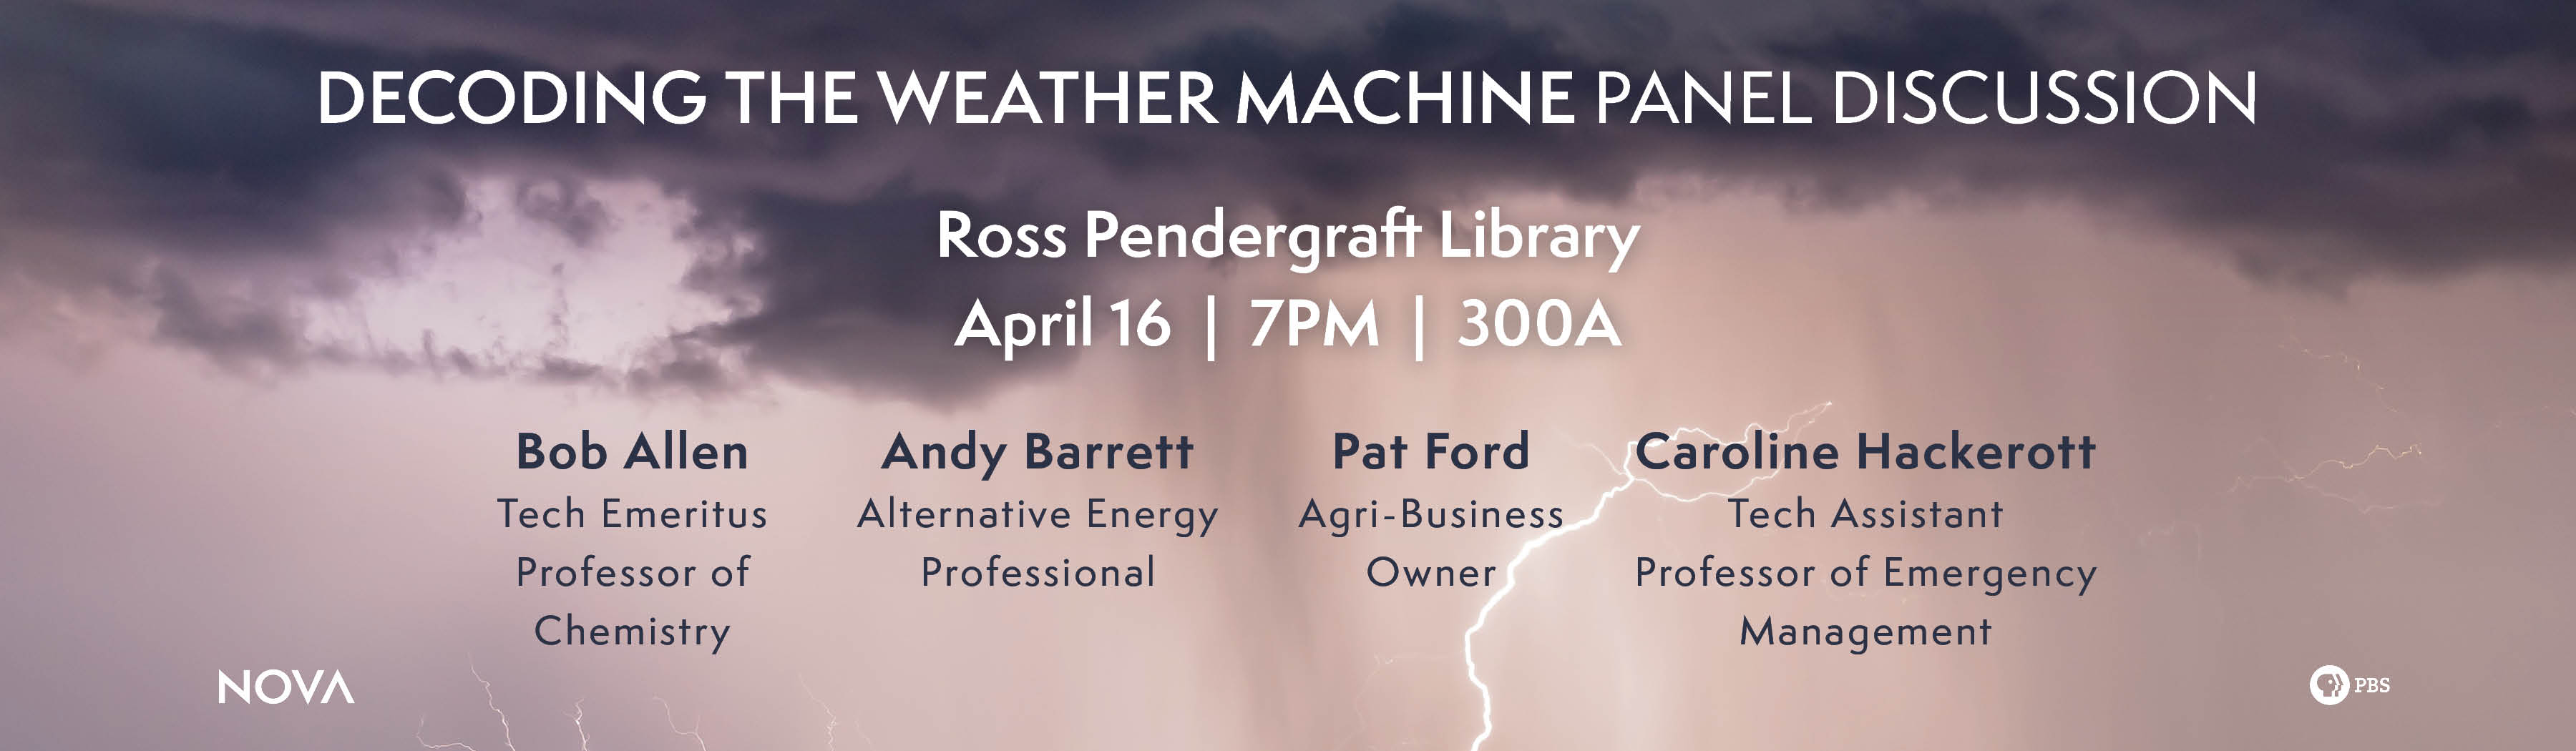 Decoding the Weather Machine Panel Discussion: Ross Pendergraft Library, April 16th at 7 PM in RPL 300A